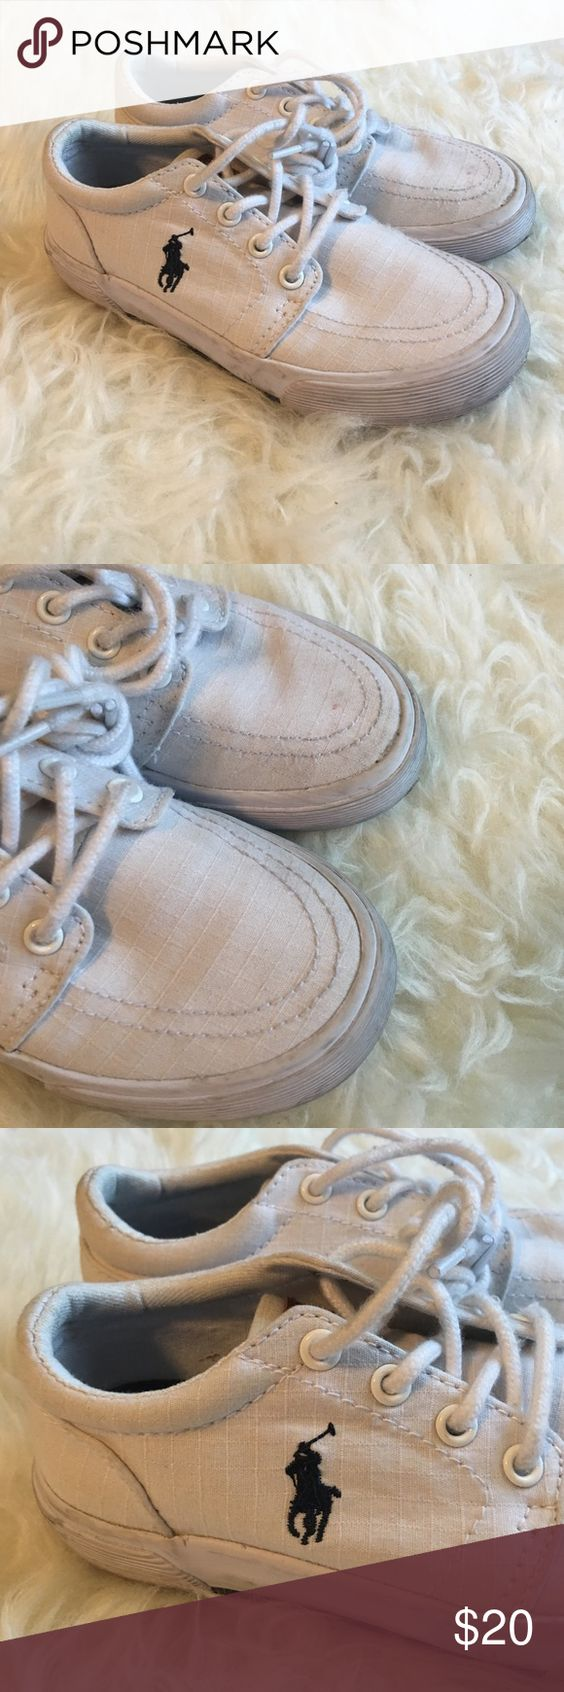 Polo Ralph Lauren Kids Sneakers White Classic Sneakers featuring lace up closure, brown Polo tag on tongue and Signature Blue Polo Icon on outer side of both shoes. Some normal scuffing and wear on sides and toes but in great condition Polo by Ralph Lauren Shoes Sneakers